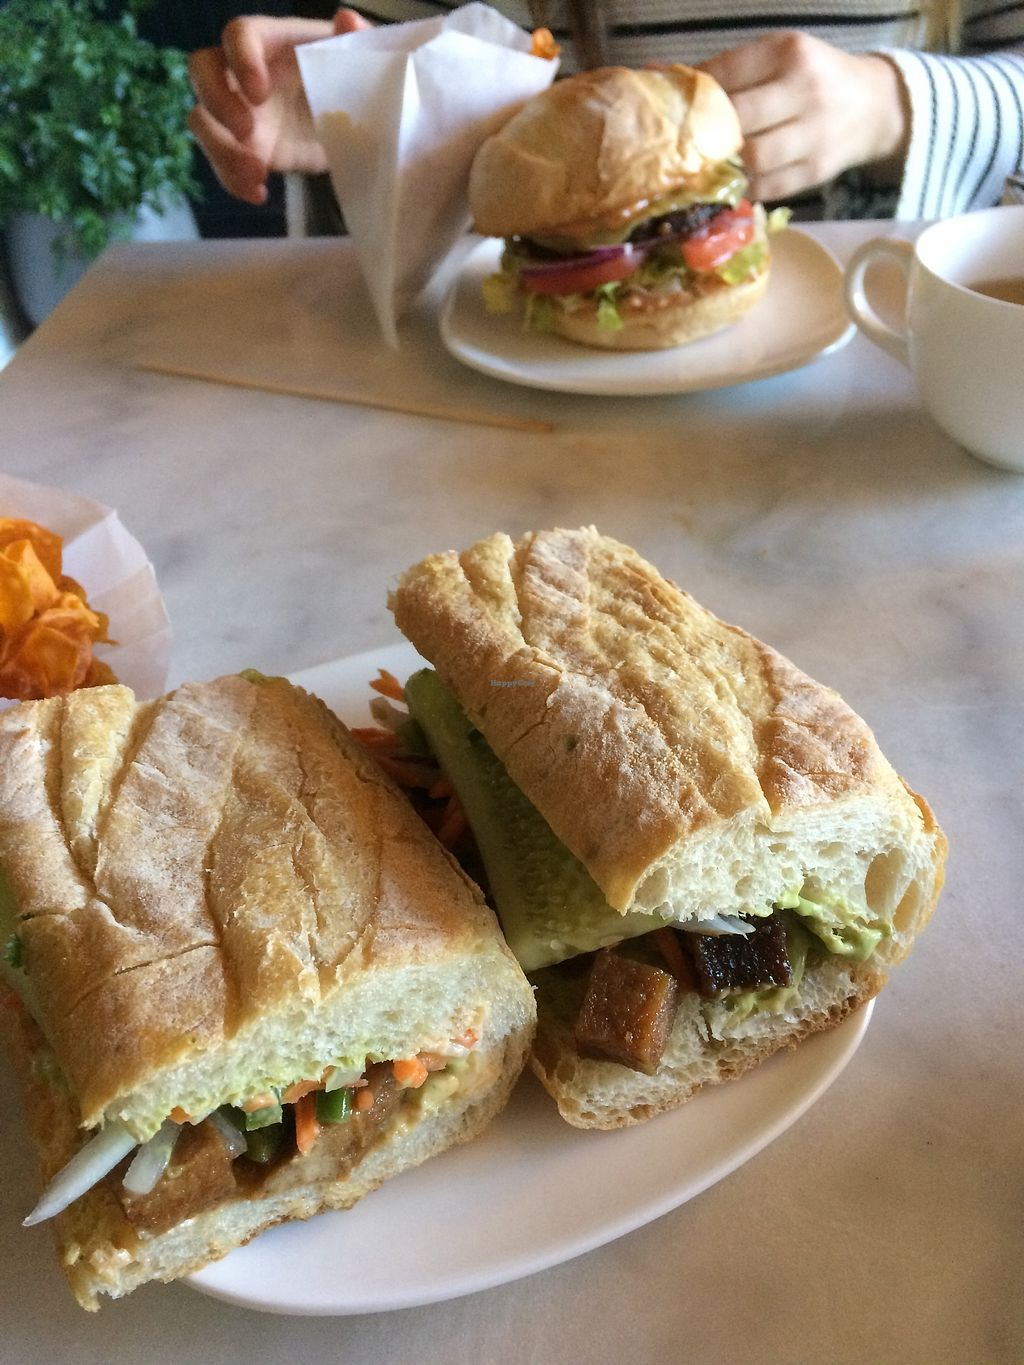 """Photo of Urbavore  by <a href=""""/members/profile/MeganChristineMorale"""">MeganChristineMorale</a> <br/>Diner Burger (Mushroom & lentil) and Banh Mi Chay (Vietnamese Tofu) <br/> March 4, 2018  - <a href='/contact/abuse/image/106548/366768'>Report</a>"""